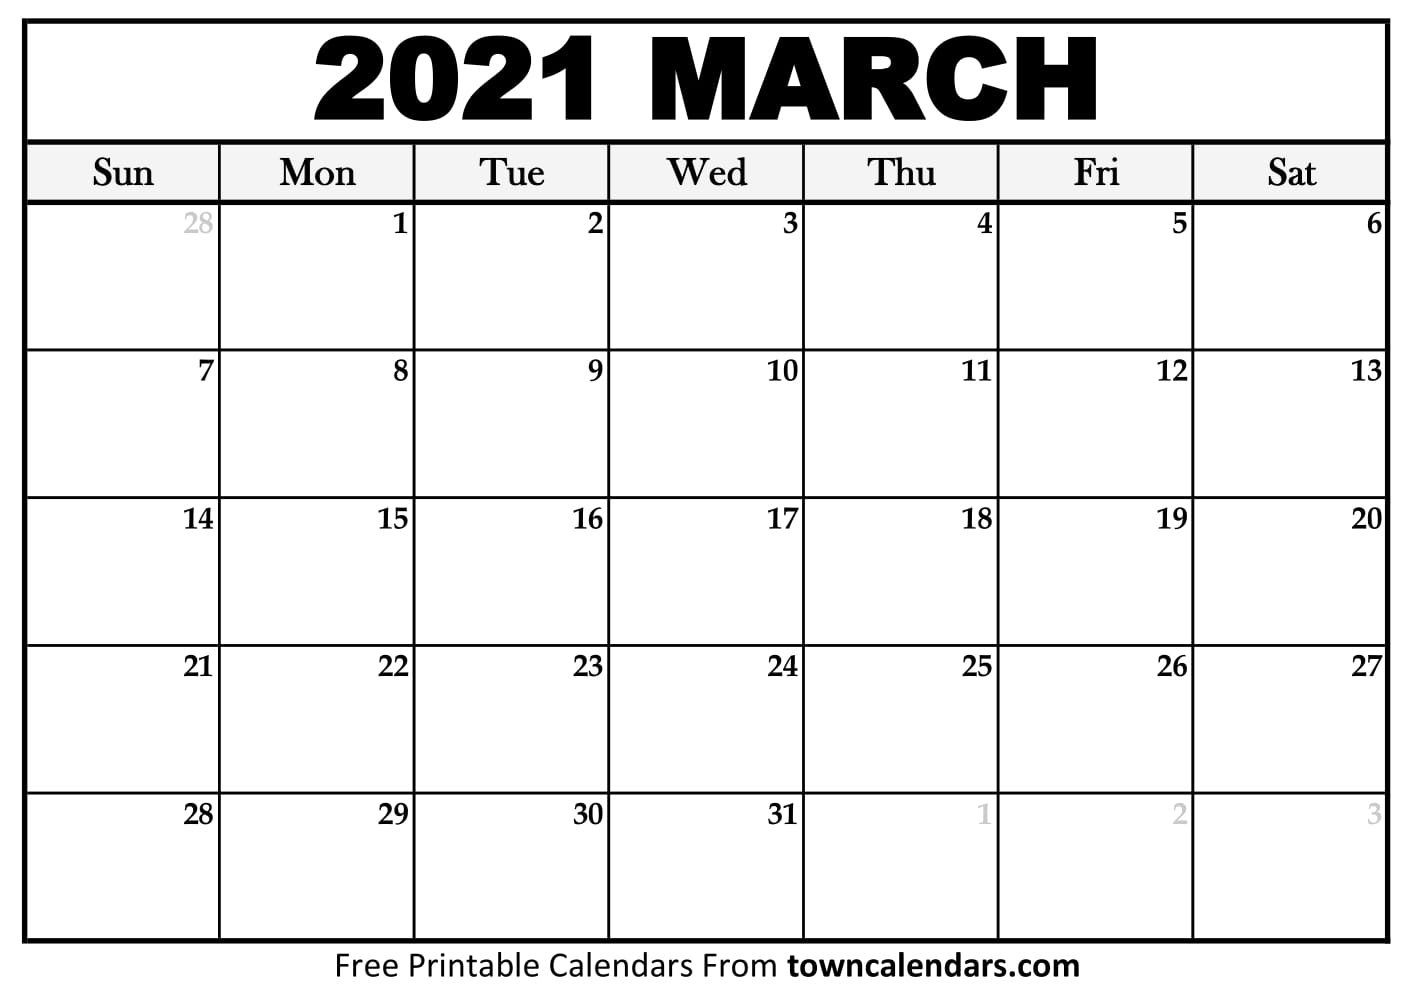 Printable March 2021 Calendar - Towncalendars